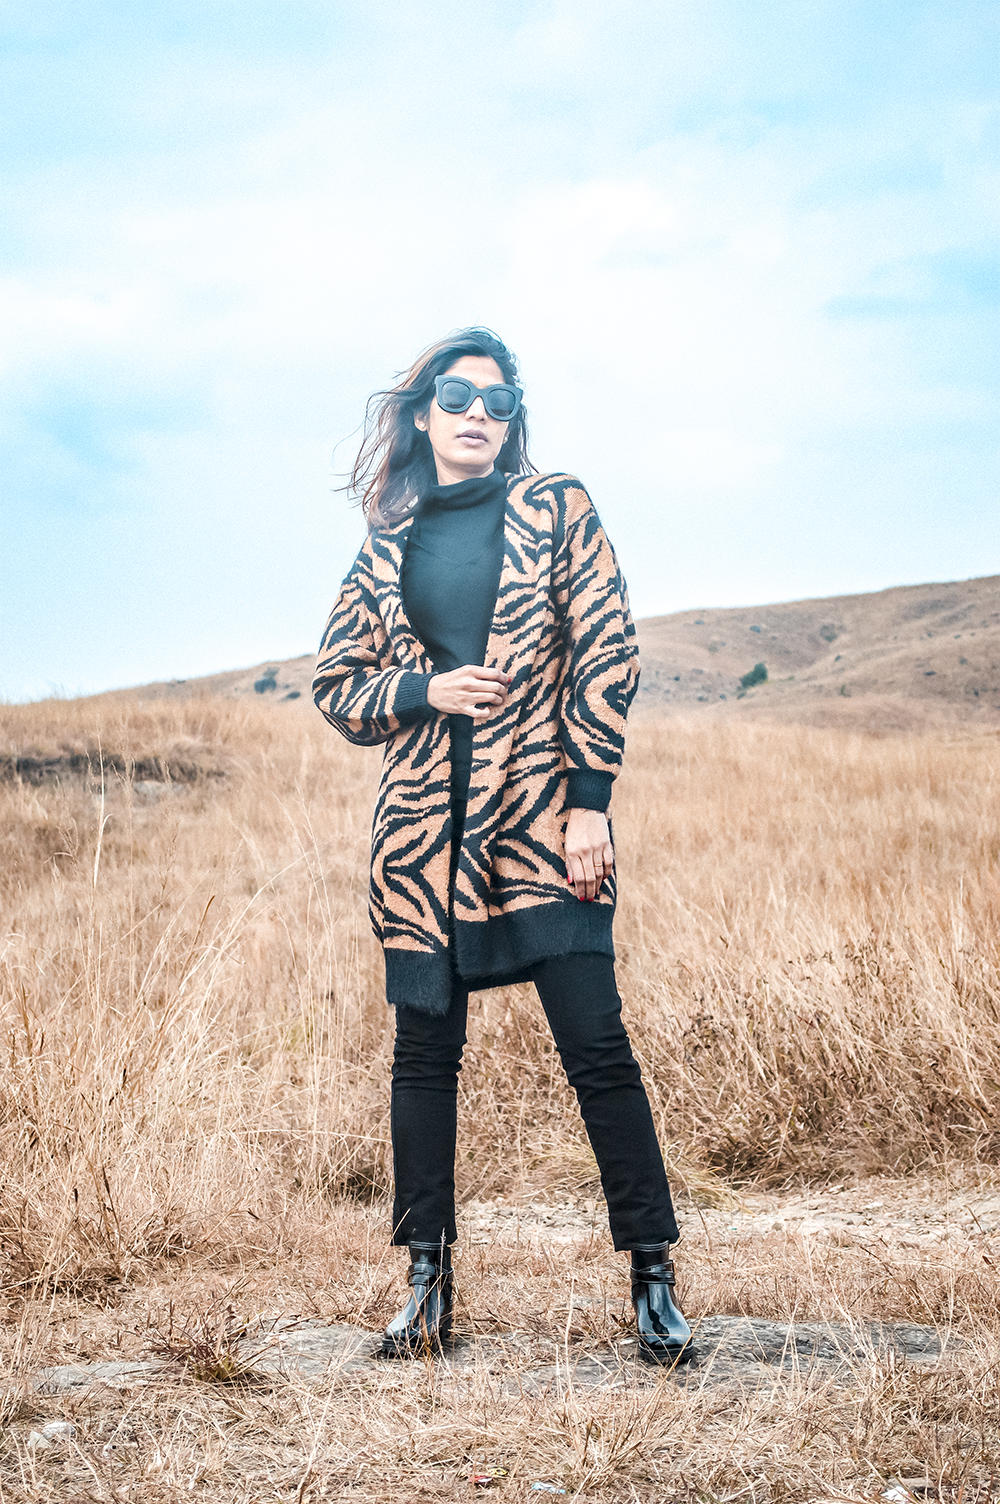 Tiger Print, Fashion, Street Style, Blogger Style, Travel, Cherrapunji, Fashion Blogger-2